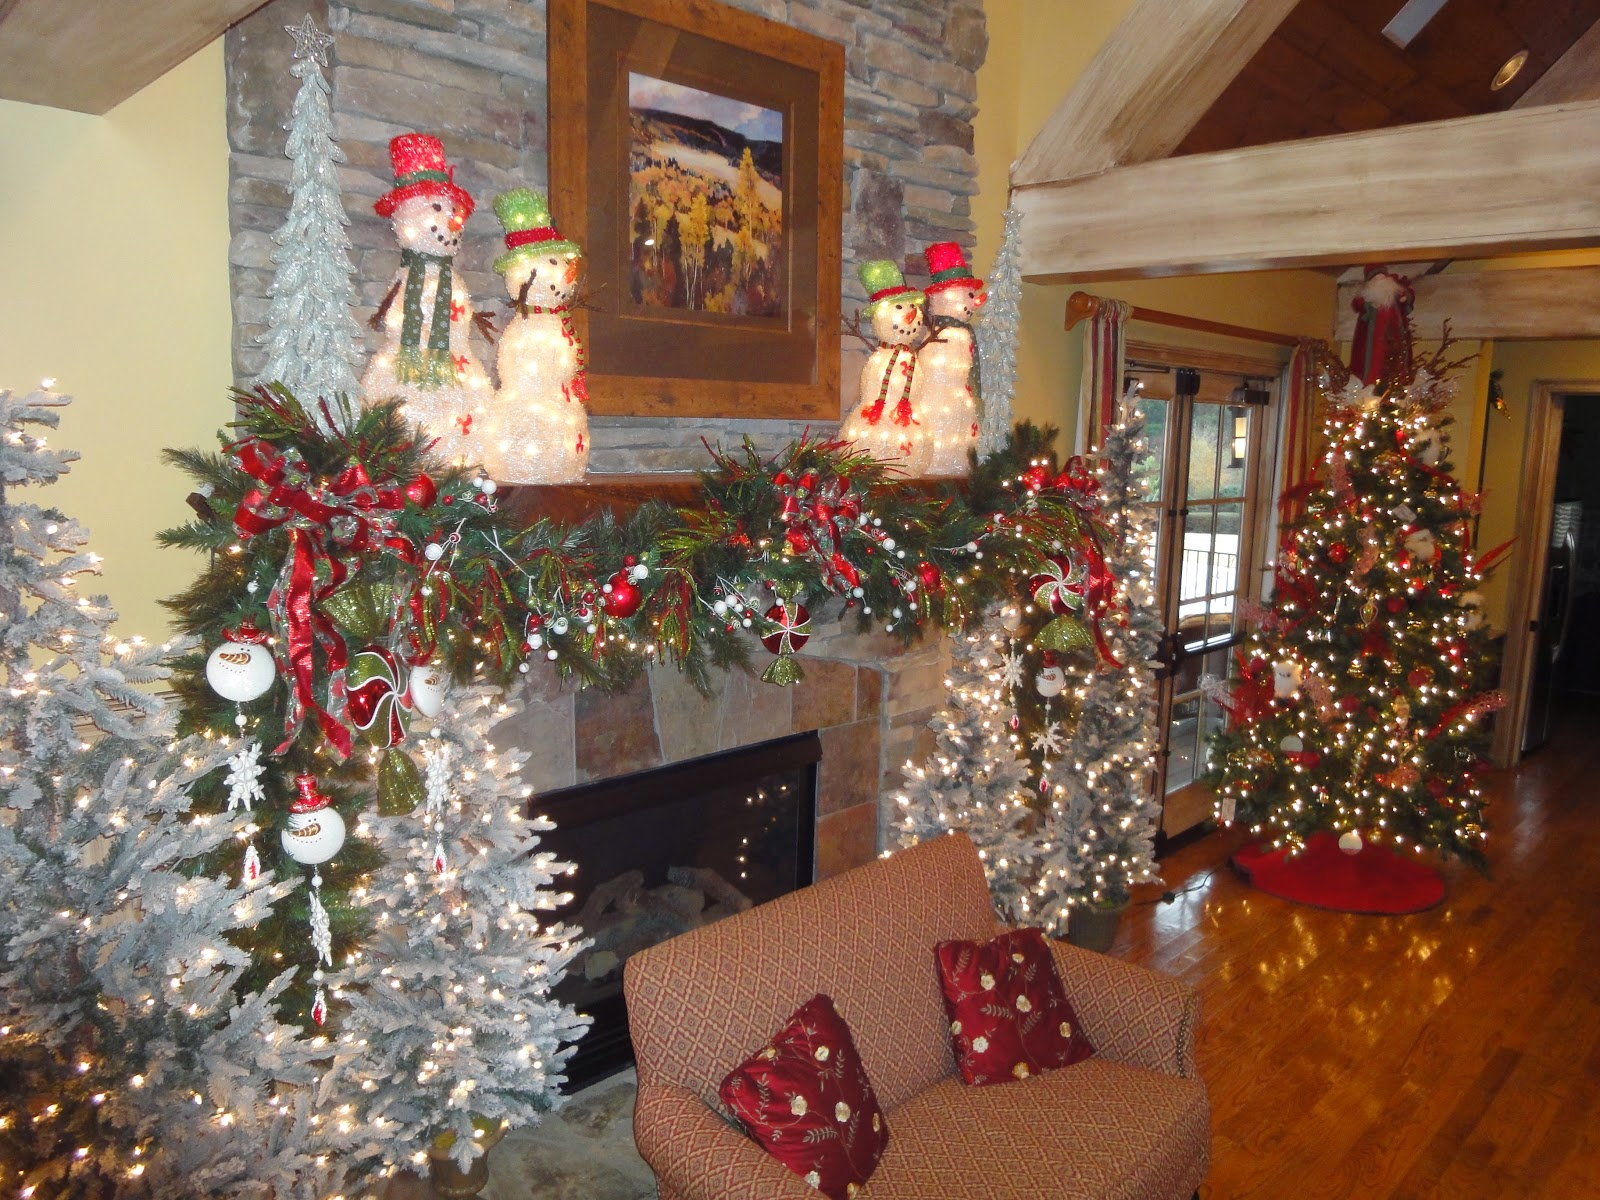 Country christmas decorations 2014 - Christmas Mantel Ideas Designs To Share And To Build Your Own Ideas Upon 2014